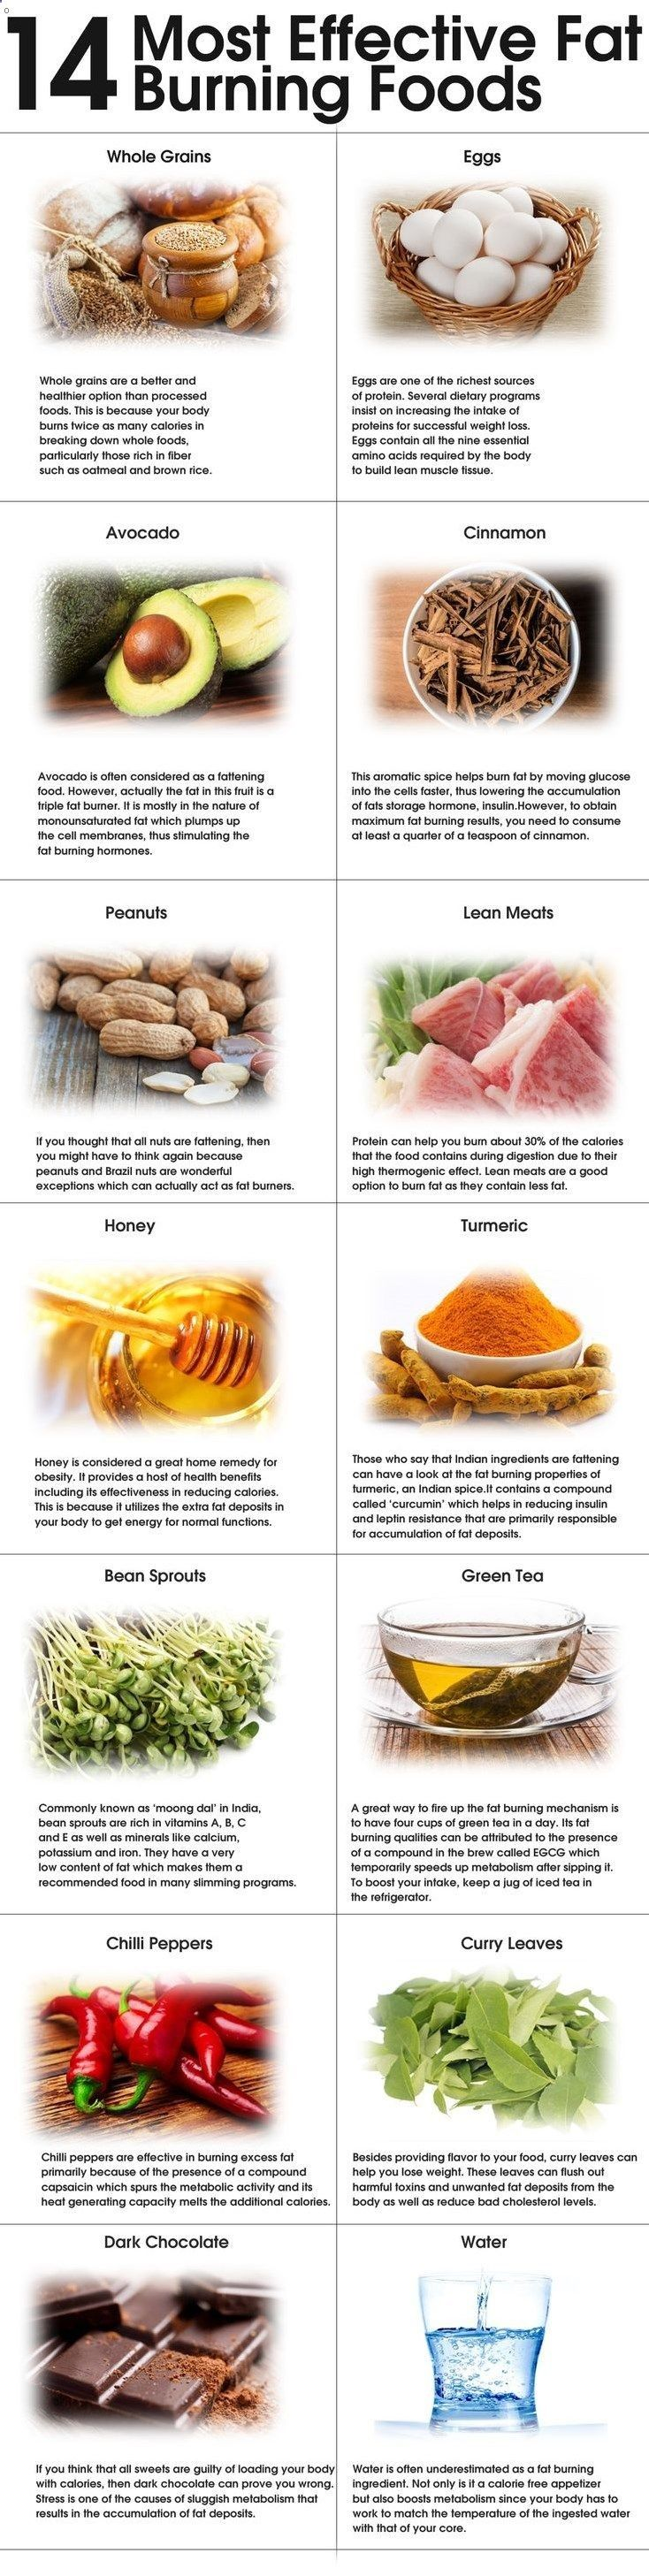 Fat Burning Meals Plan-Tips Are U using Wrong Way to Lose Weight?Its Not WHAT to eat but HOW to eat,the… – We Have Developed The Simplest And Fastest Way To Preparing And Eating Delicious Fat Burning Meals Every Day For The Rest Of Your Life